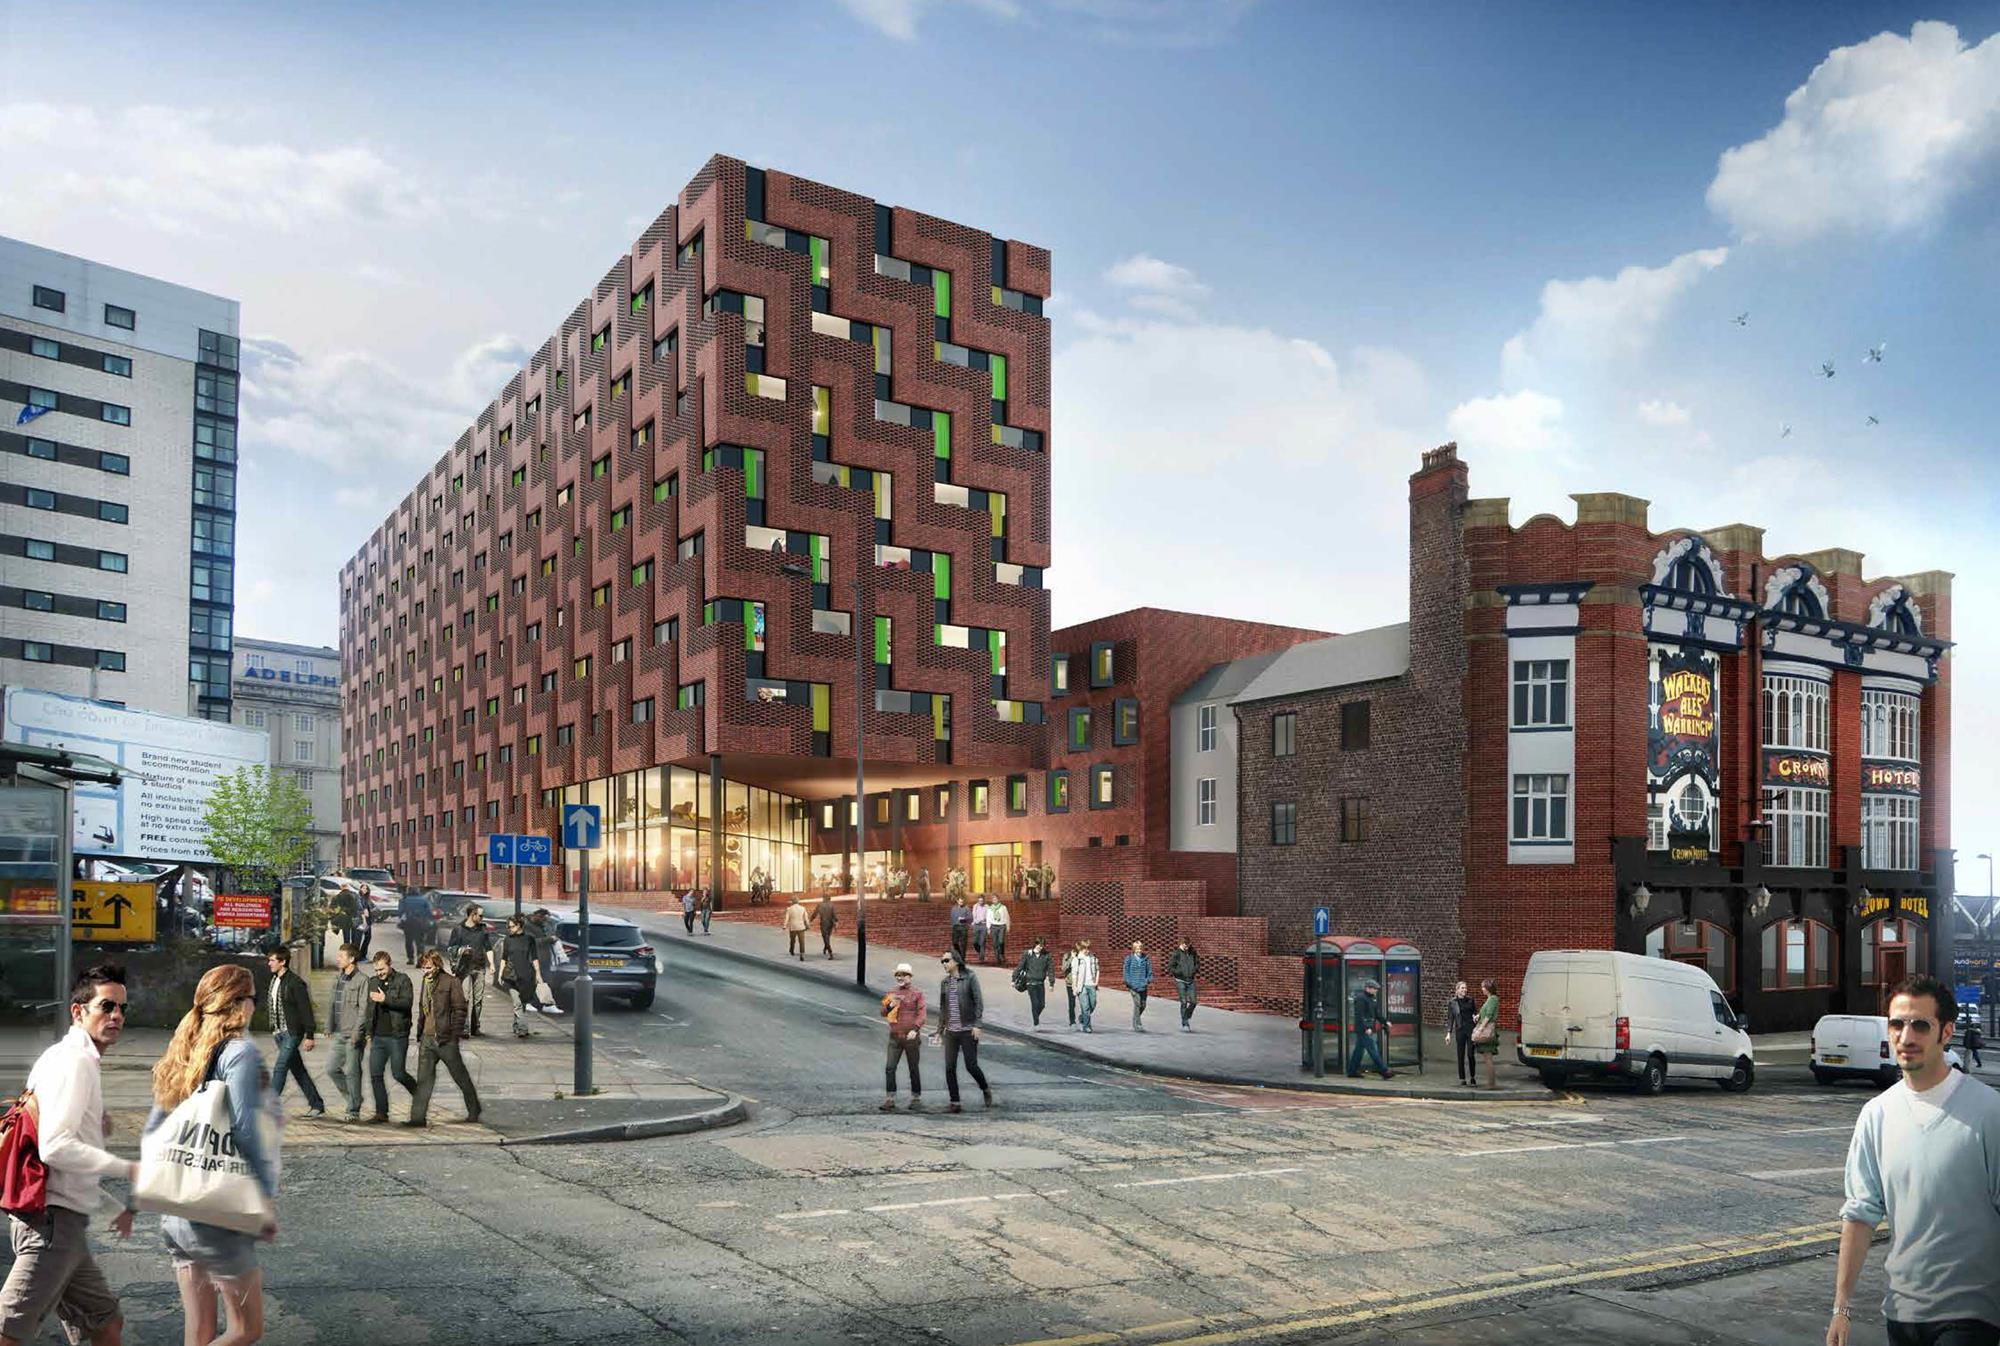 Heritage group attacks broadway malyan liverpool scheme for Broadway malyan